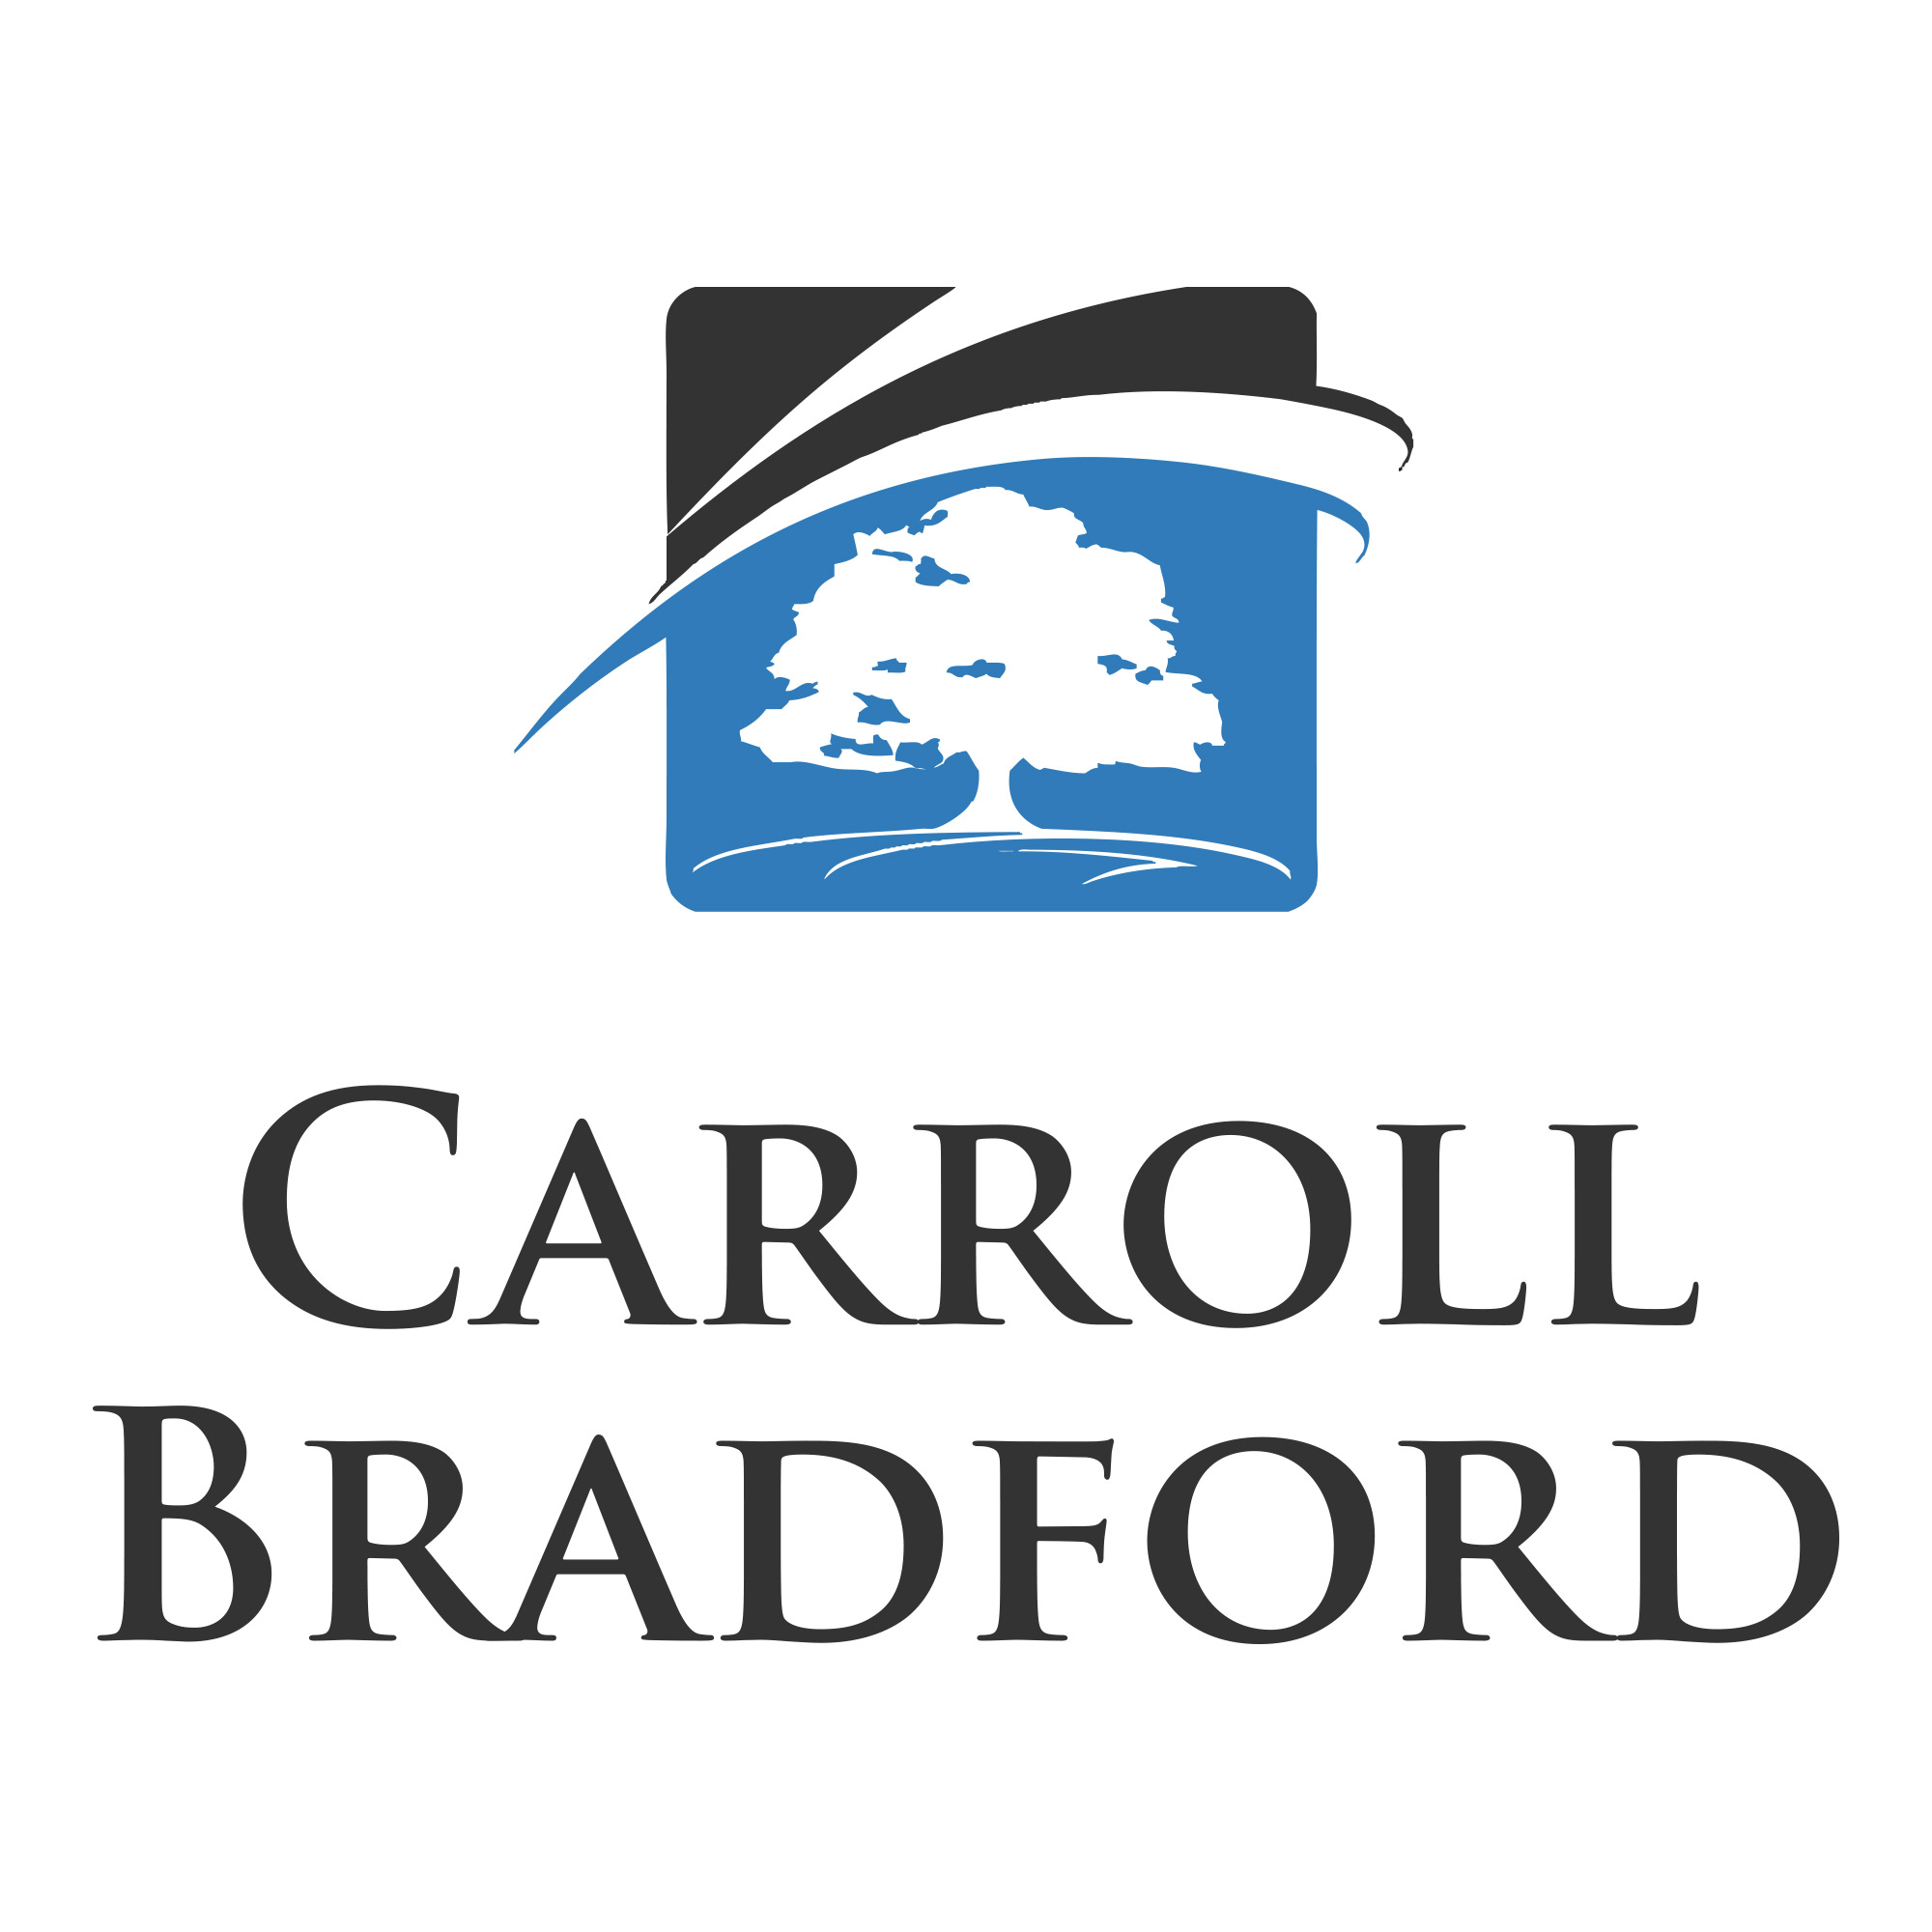 Carroll Bradford Inc 6 Photos Roofers Orlando Fl Reviews